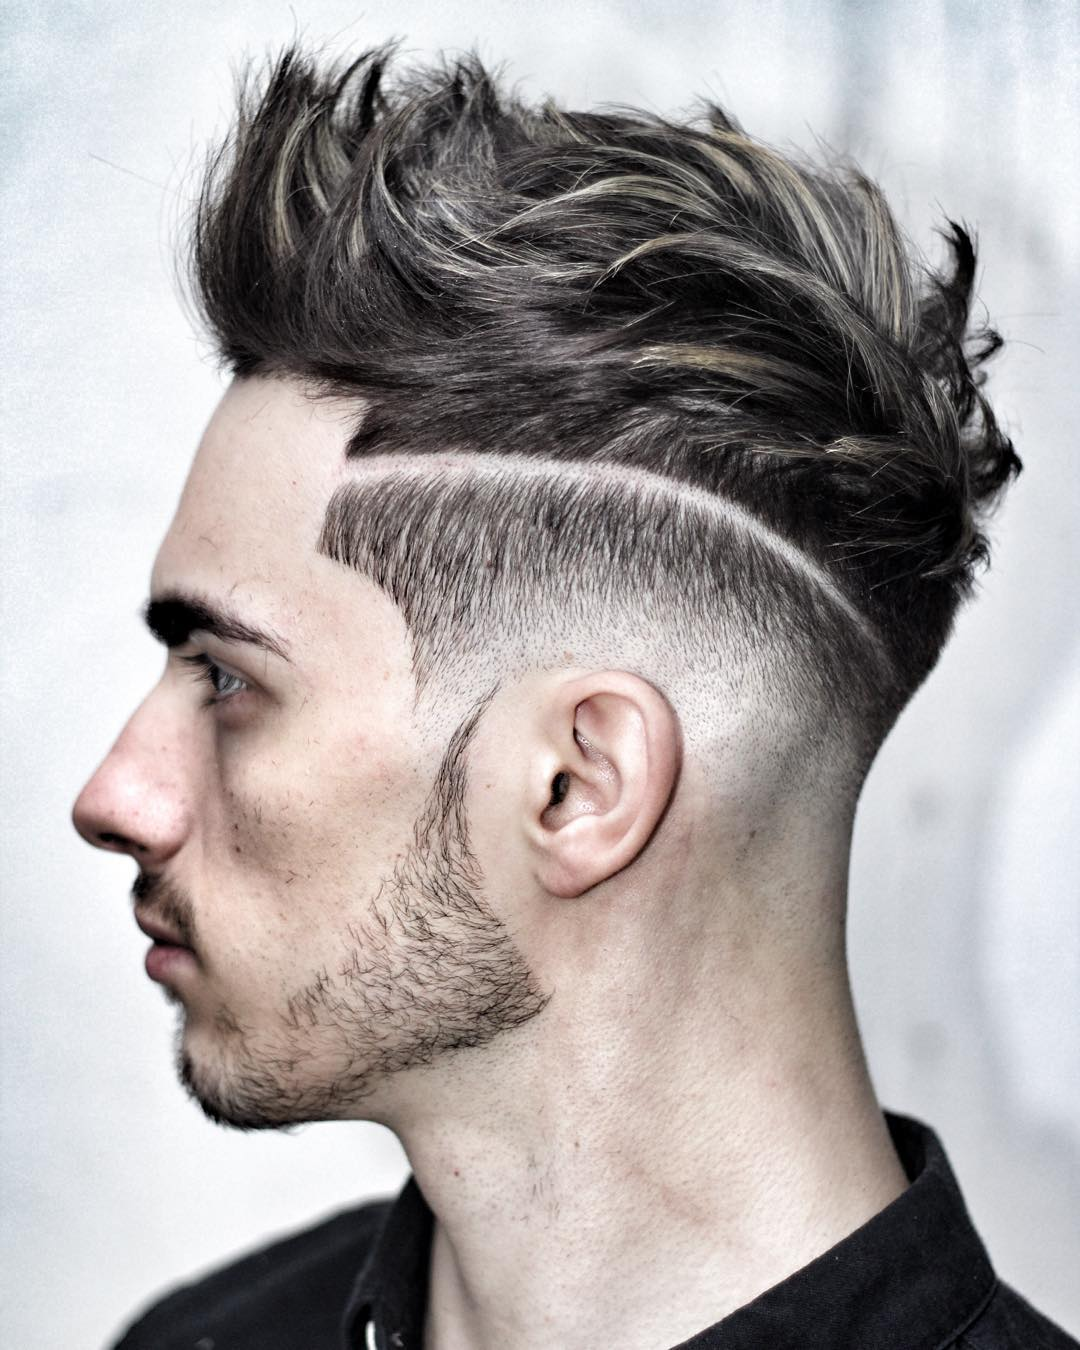 Pleasing Short Hair Hairstyles And Haircuts For Men 2017 Hairstyle Inspiration Daily Dogsangcom